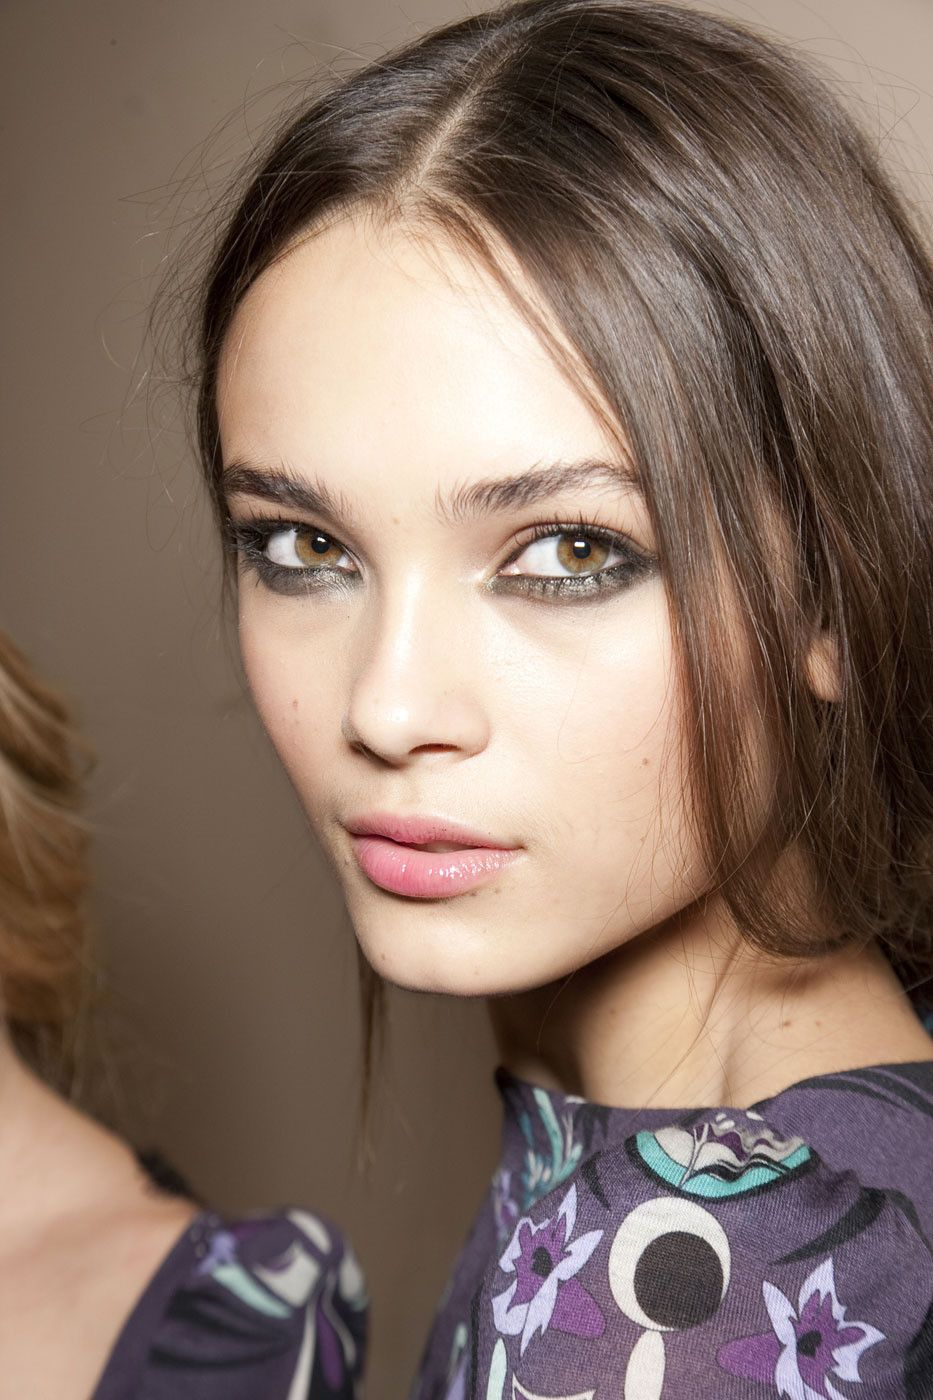 11 Different Types Of Lips Shapes That Are Considered Most ...